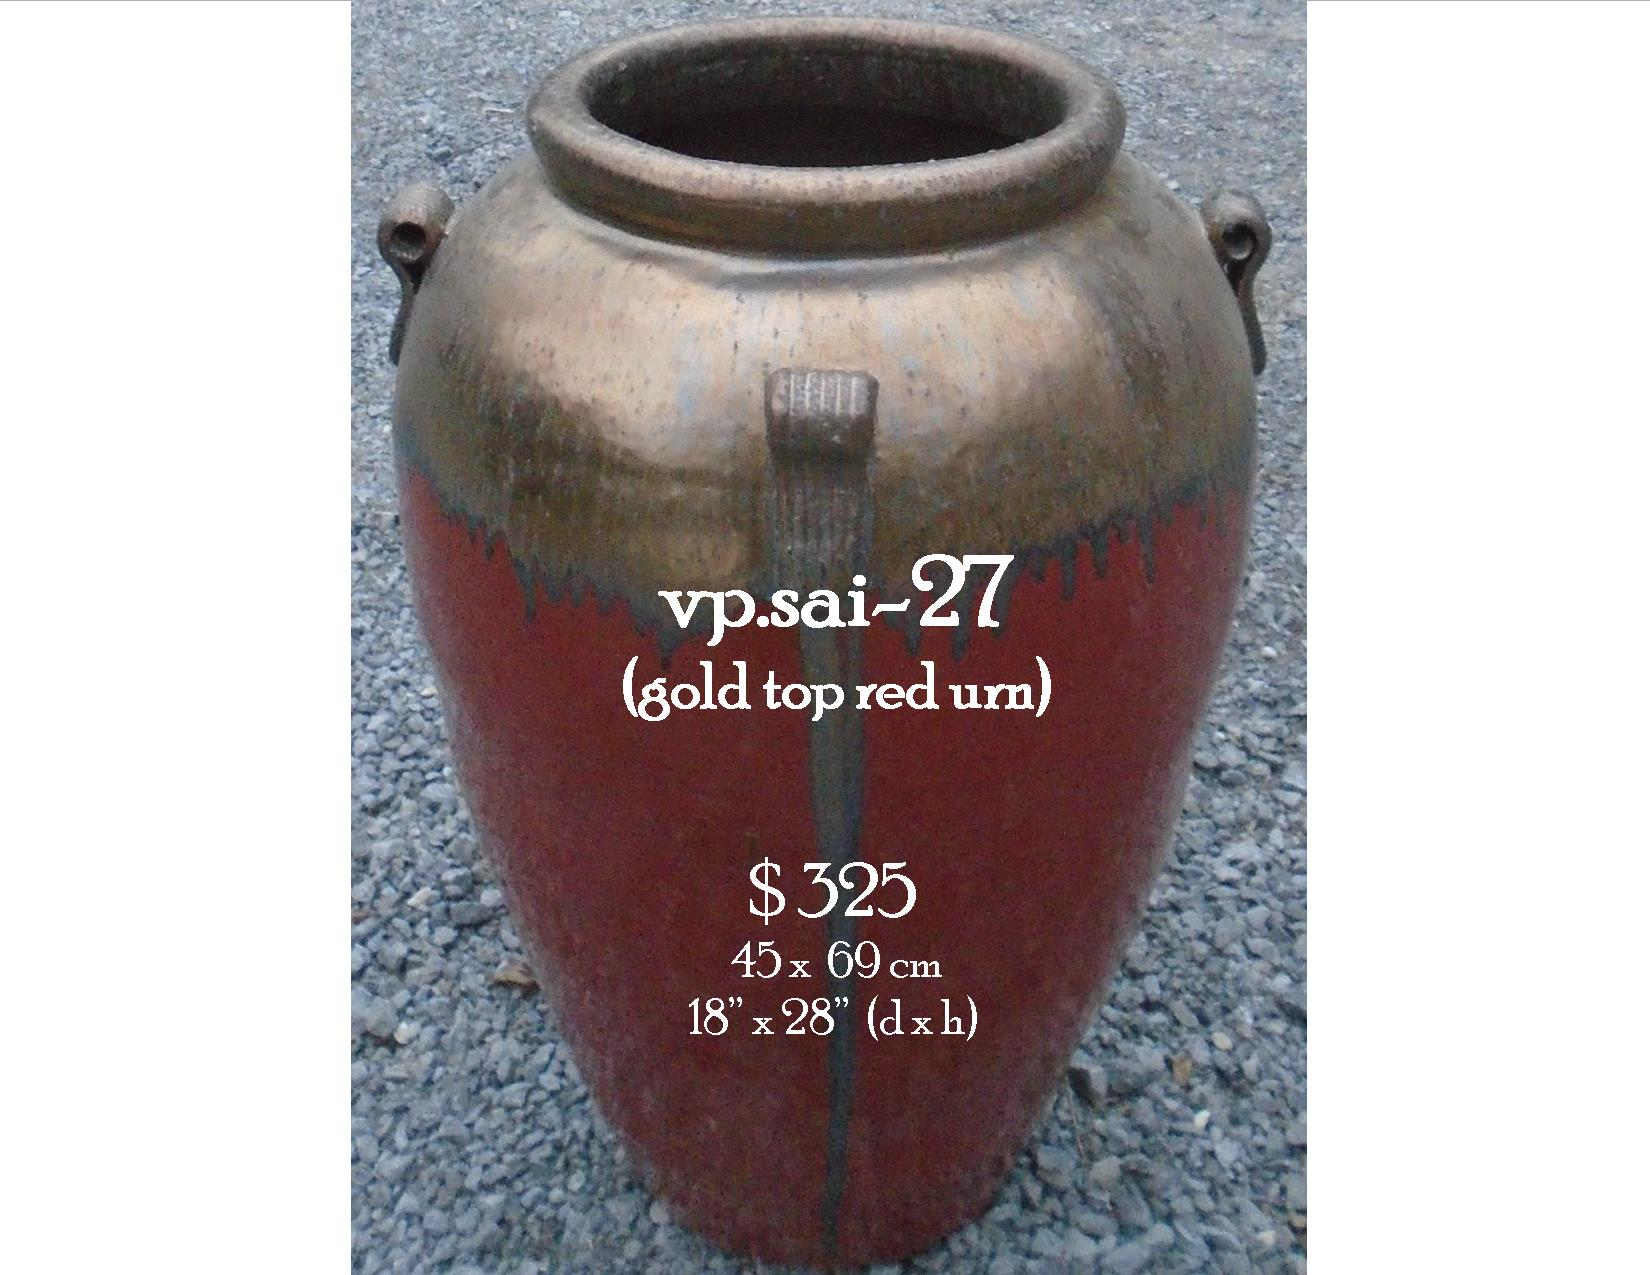 vp.sai-27  gold top red urn